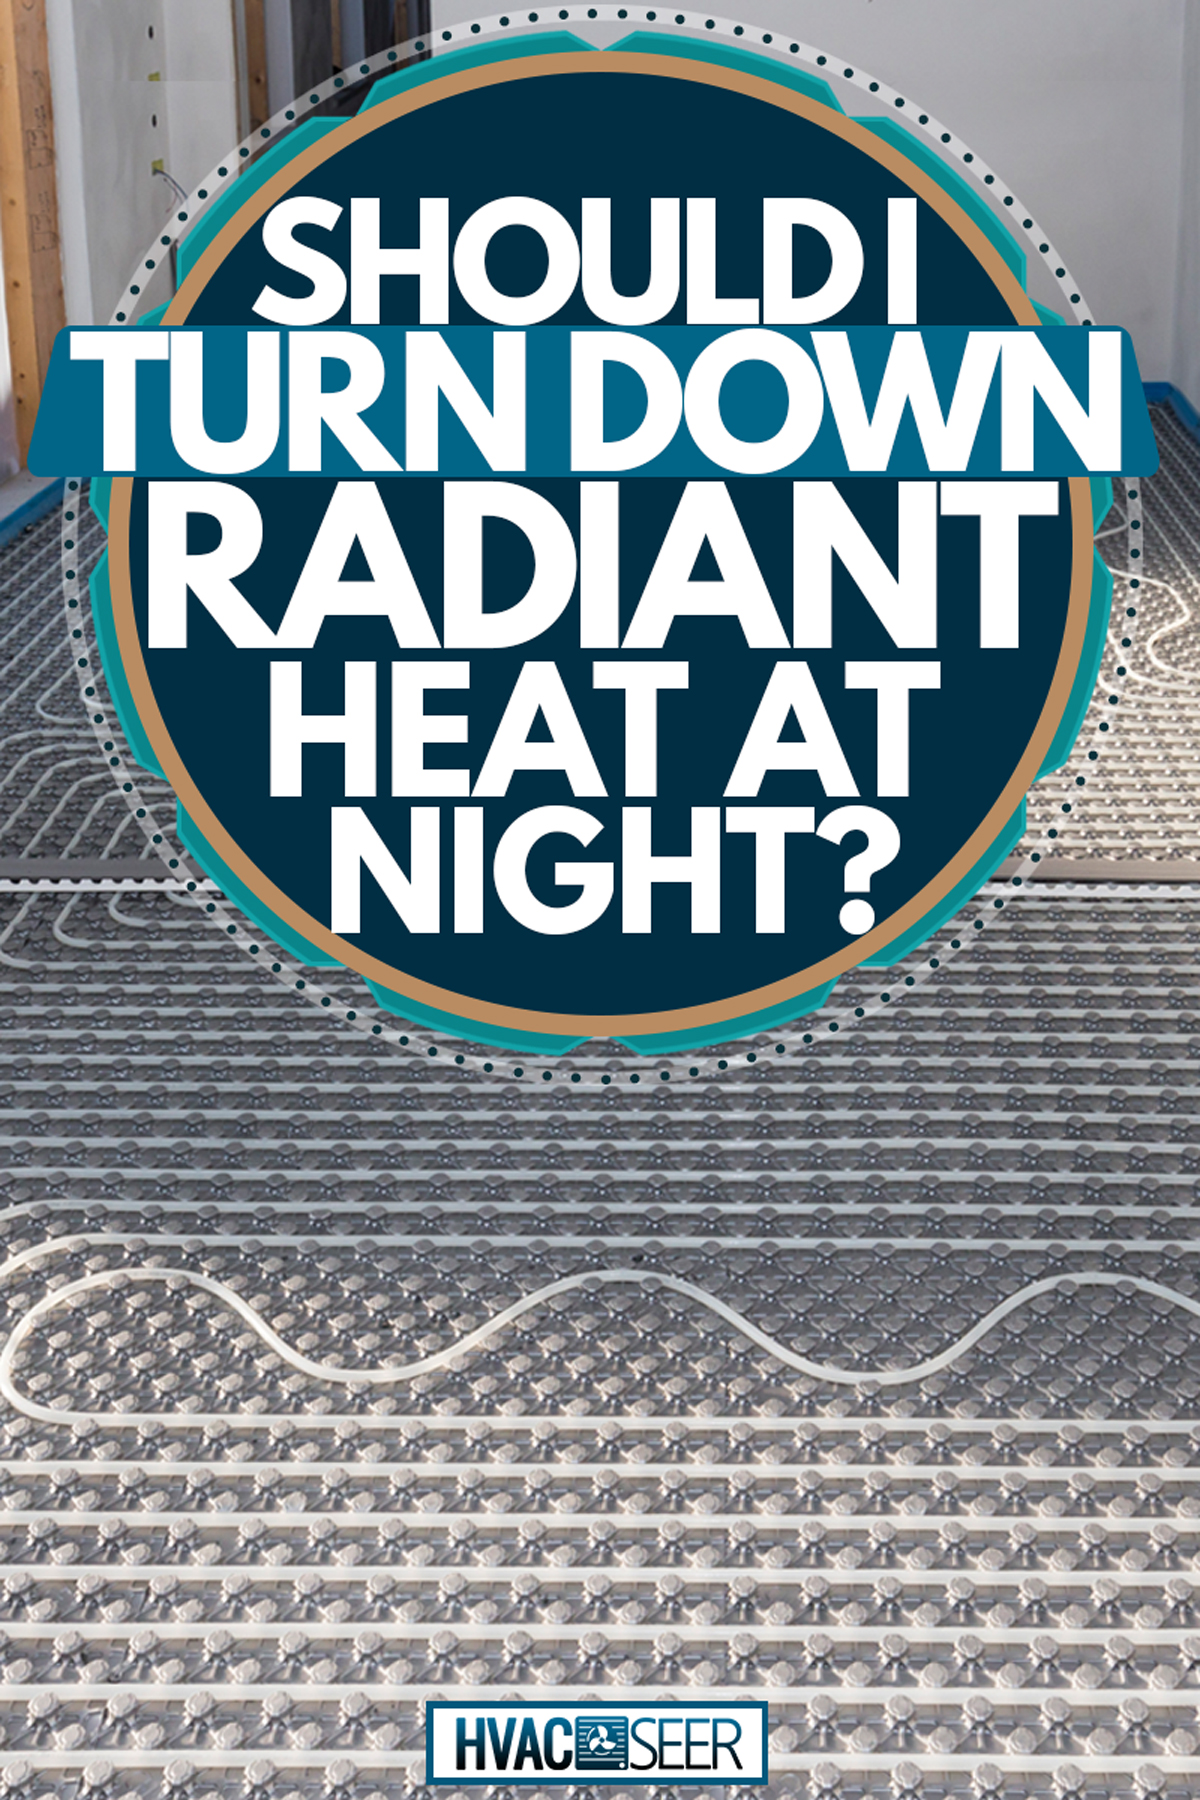 A radiant floor heating system on a small room with a control panel on the wall, Should I Turn Down Radiant Heat At Night?